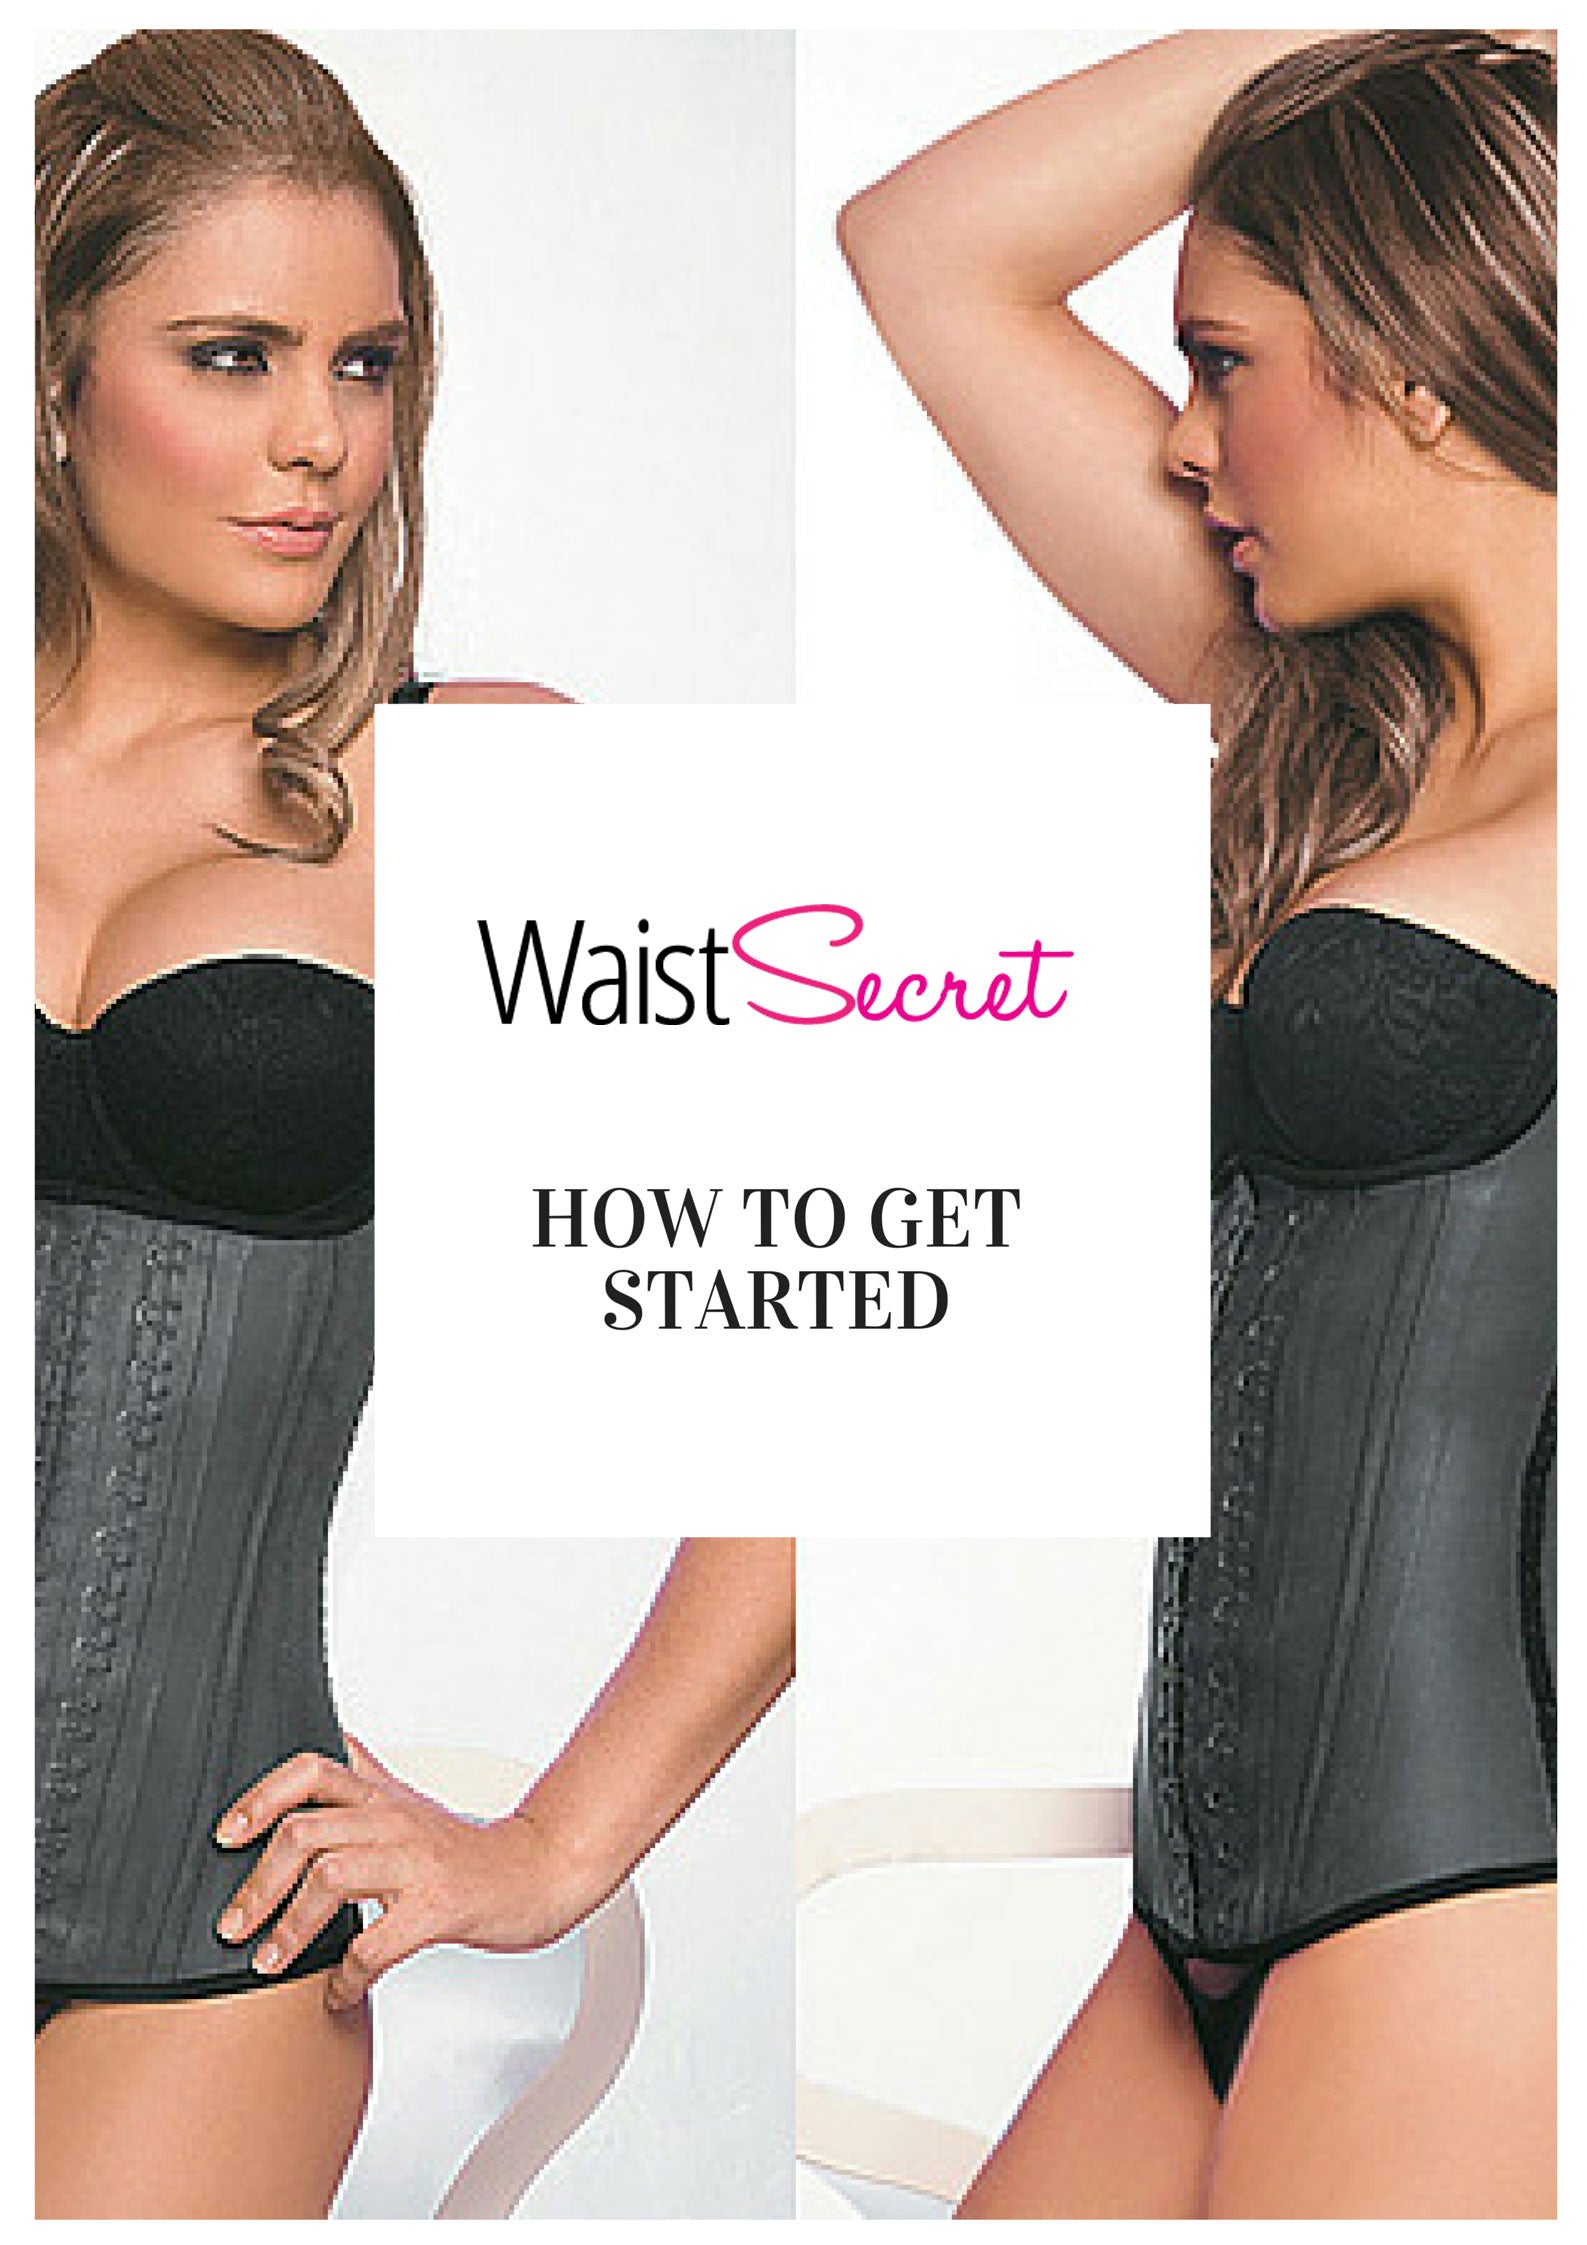 f24789fe64fed We at WaistSecret want you to enjoy your journey into waist training. It is  important to pick out the right kind of waist trainer. If you are starting  out